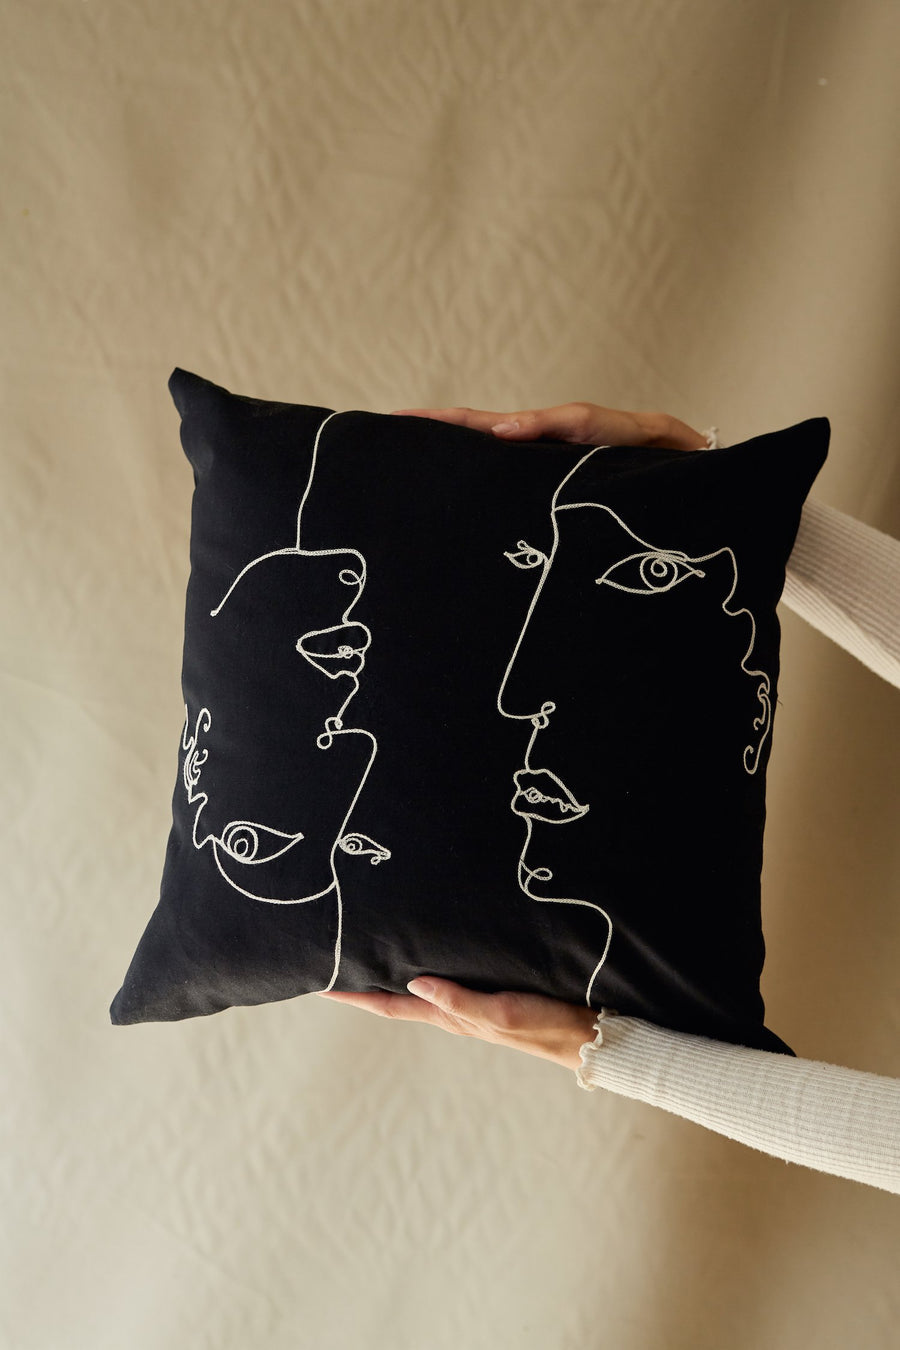 chainstitch embroidery pillowcase